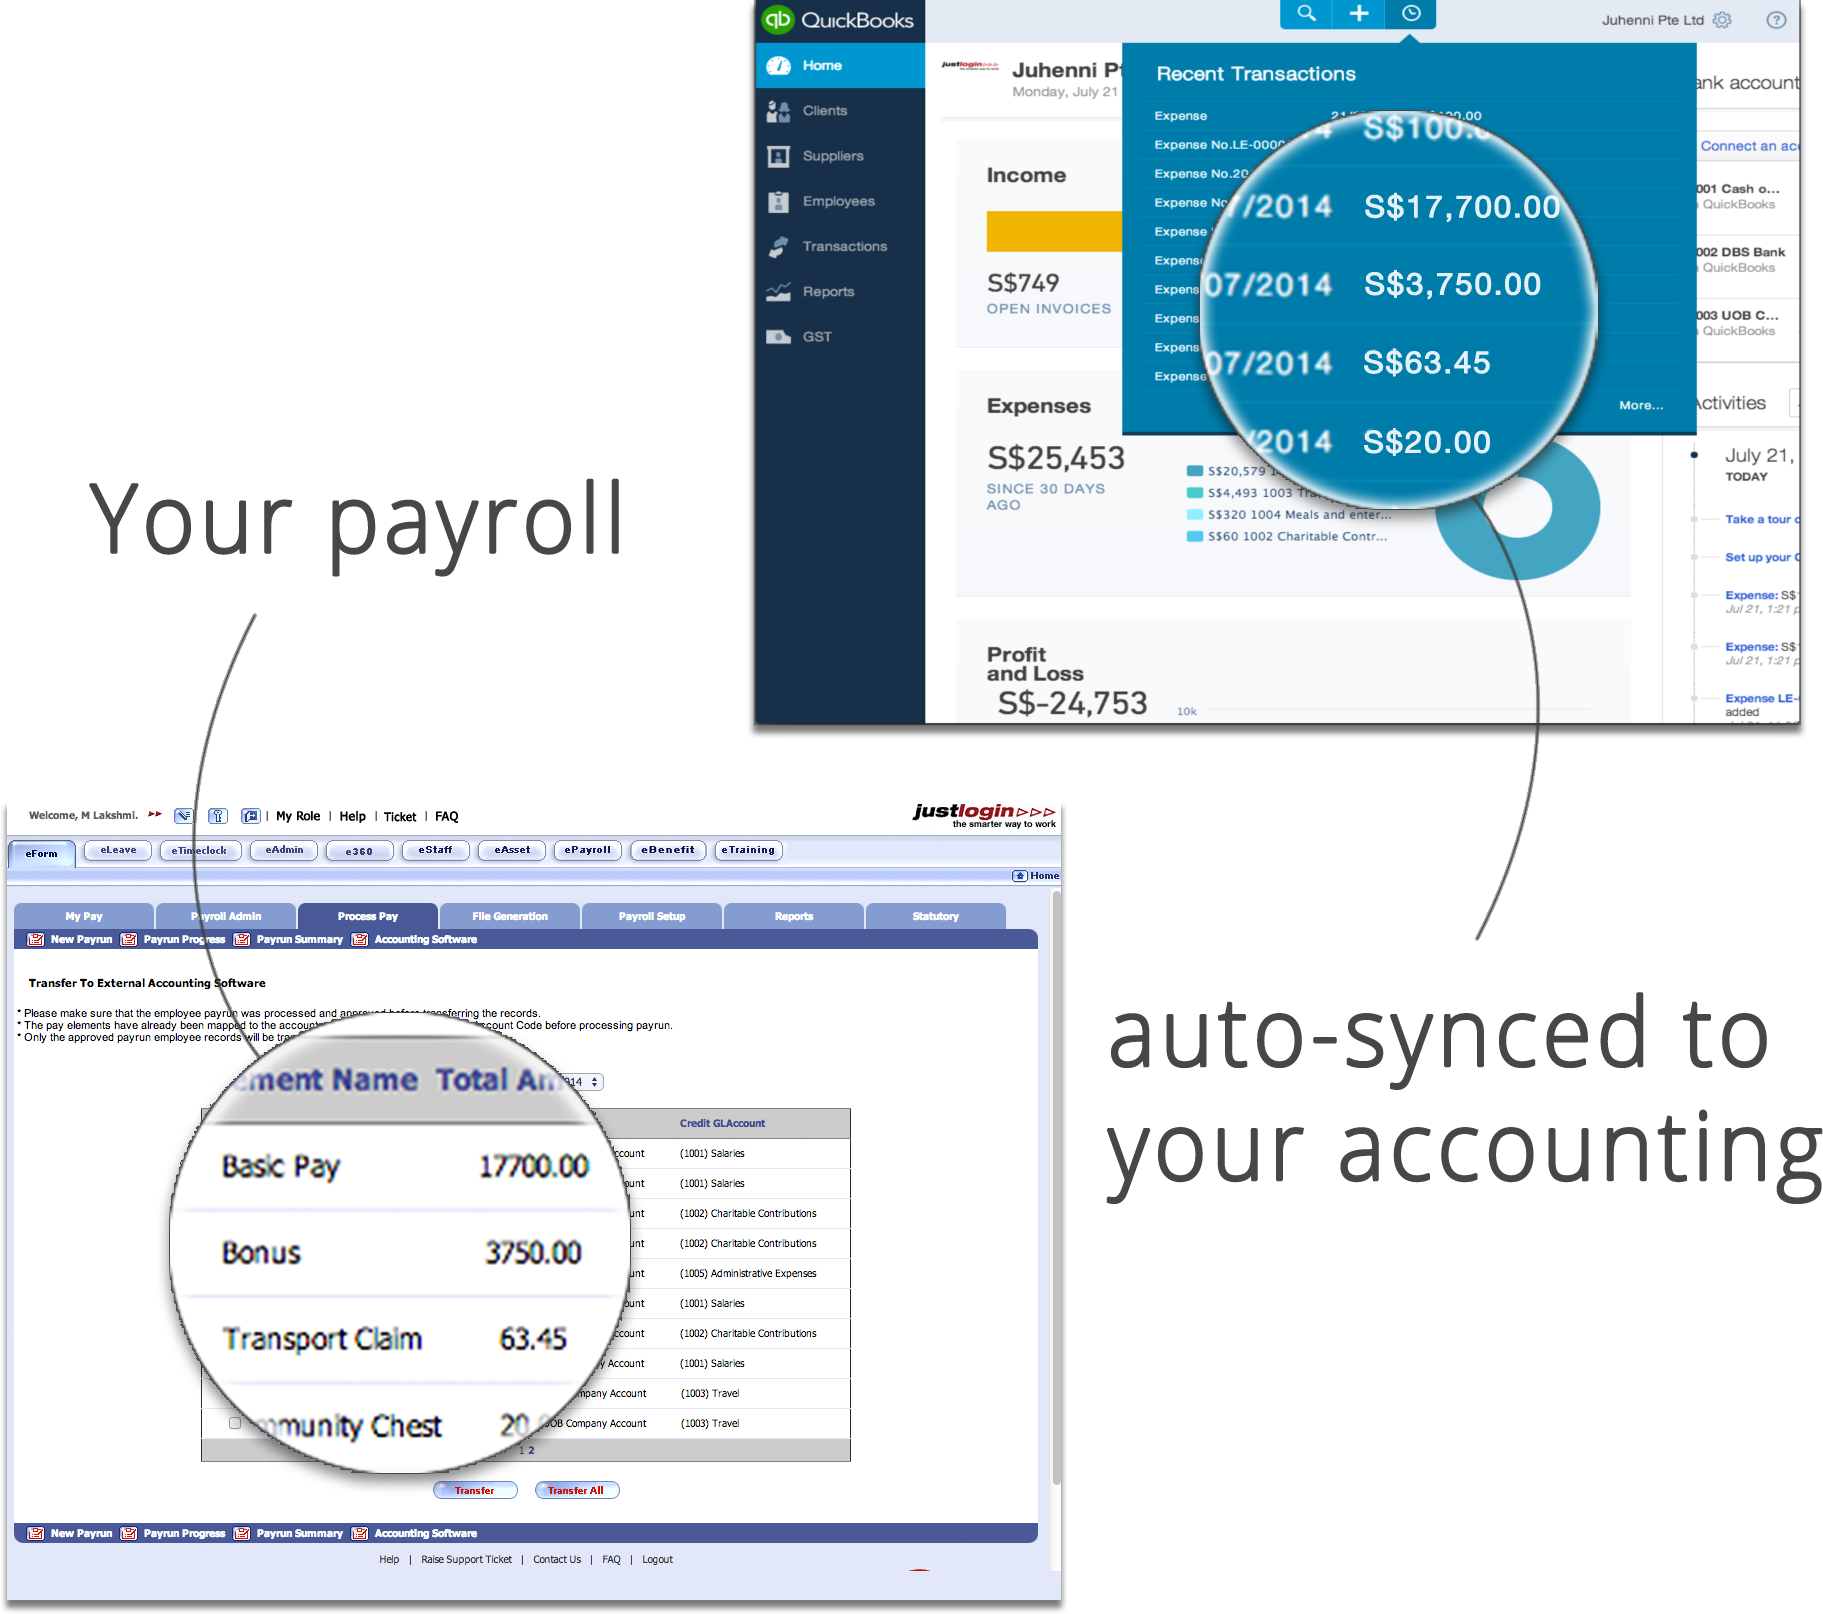 Cloud Payroll Software, Online Payroll Management, Payroll. Mortgage For Income Property. Toxic Waste Disposal Facts Square D Edb34020. Primarily Inattentive Add Austin Peay College. How Much Is A Car Insurance Photo Id Florida. Hosted Intranet Solutions Fha Mortgage Broker. Criminal Attorney Austin Tx 88 Ford Taurus. Criminal Psychologist Education. Debt Settlement Vs Debt Consolidation